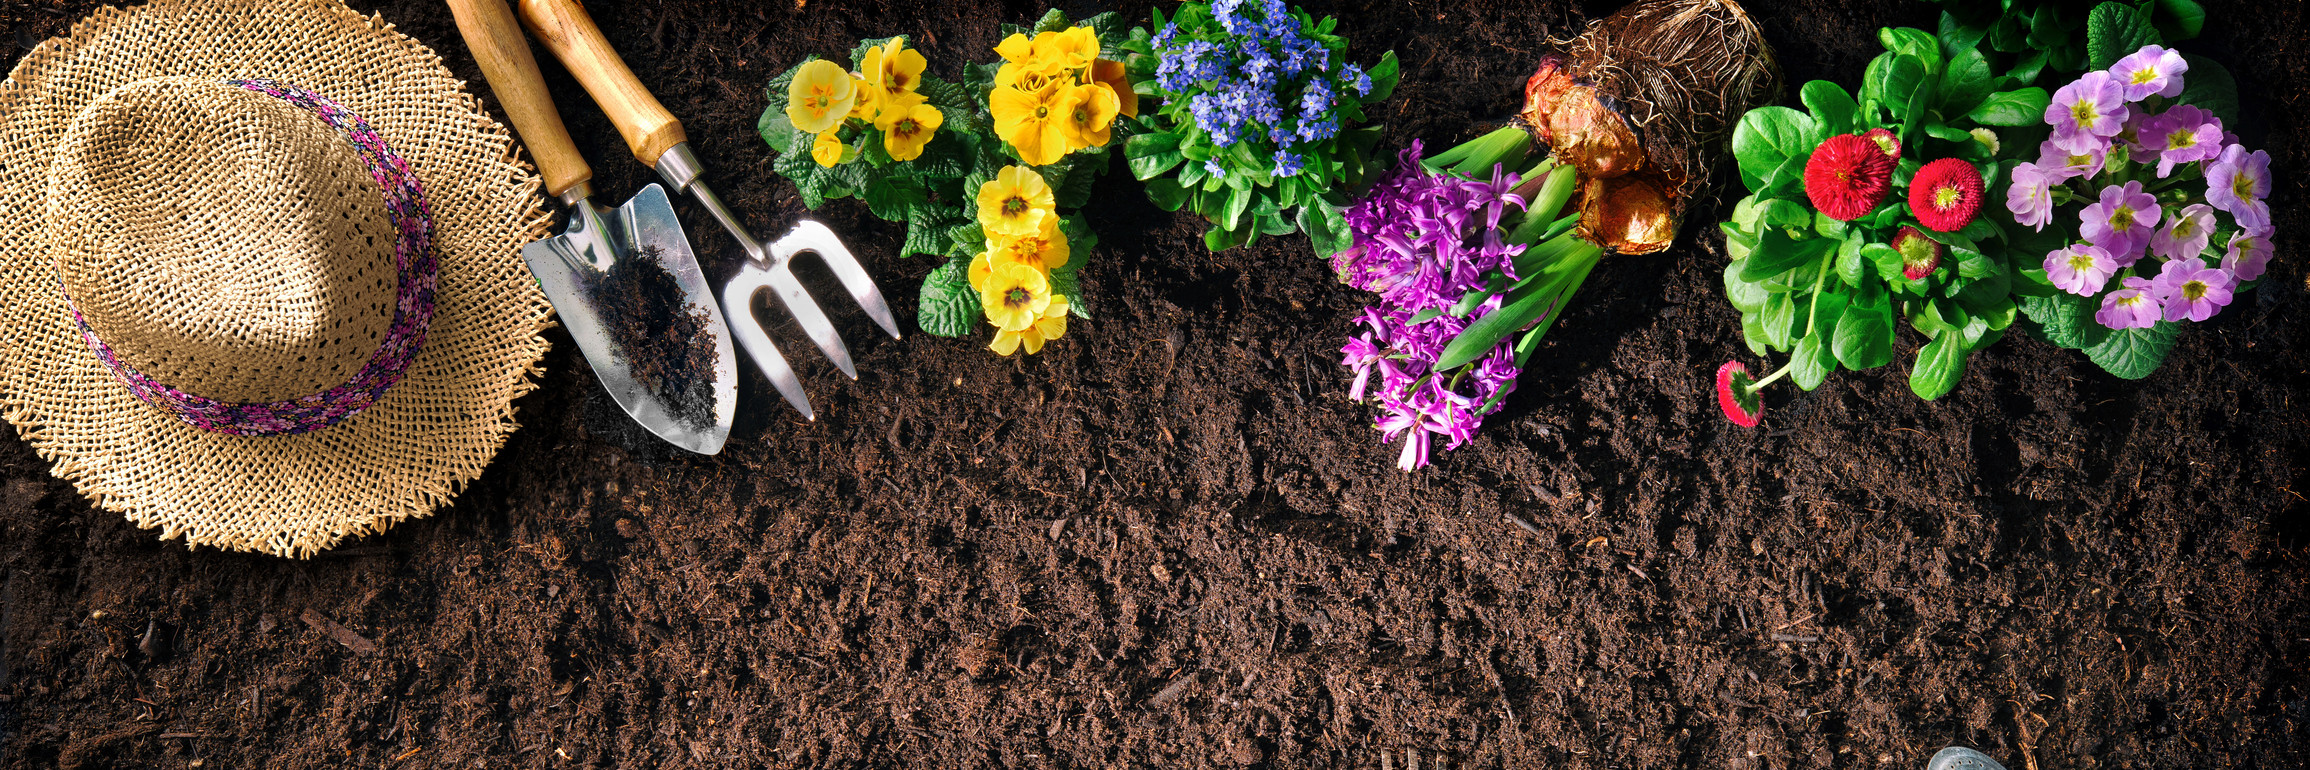 How to Beautify your Property with Ornamentals